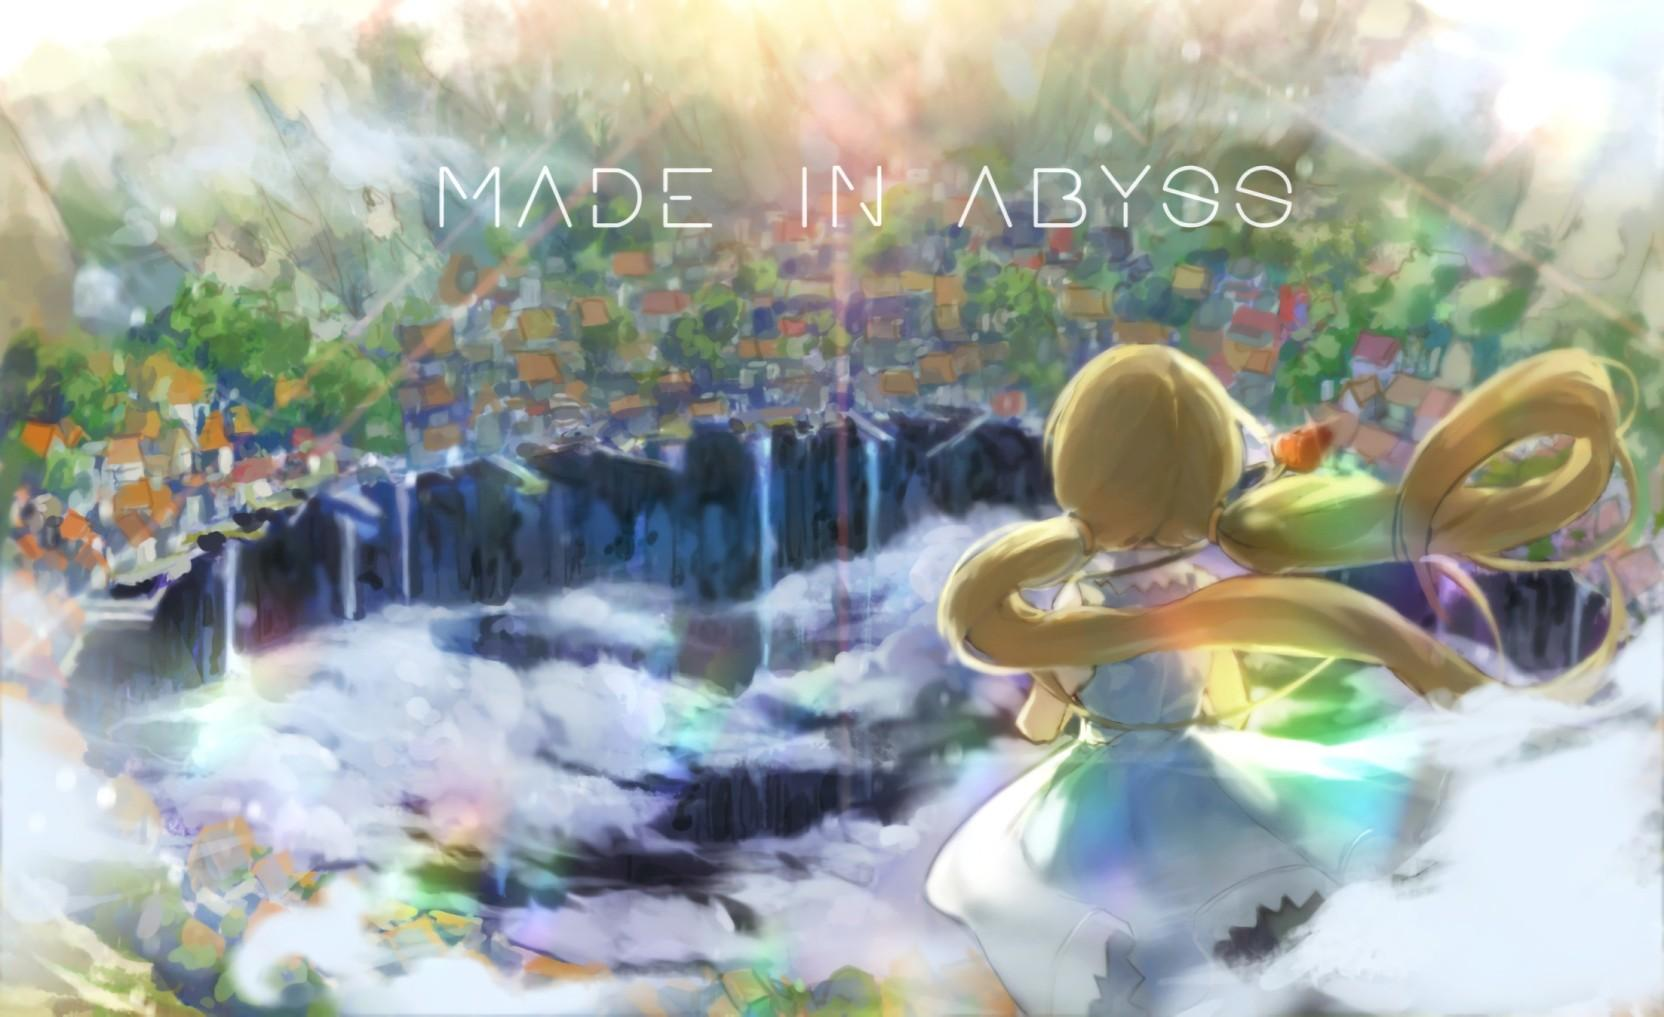 Athah Anime Made In Abyss Made in Abyss Riko 13*19 inches Wall